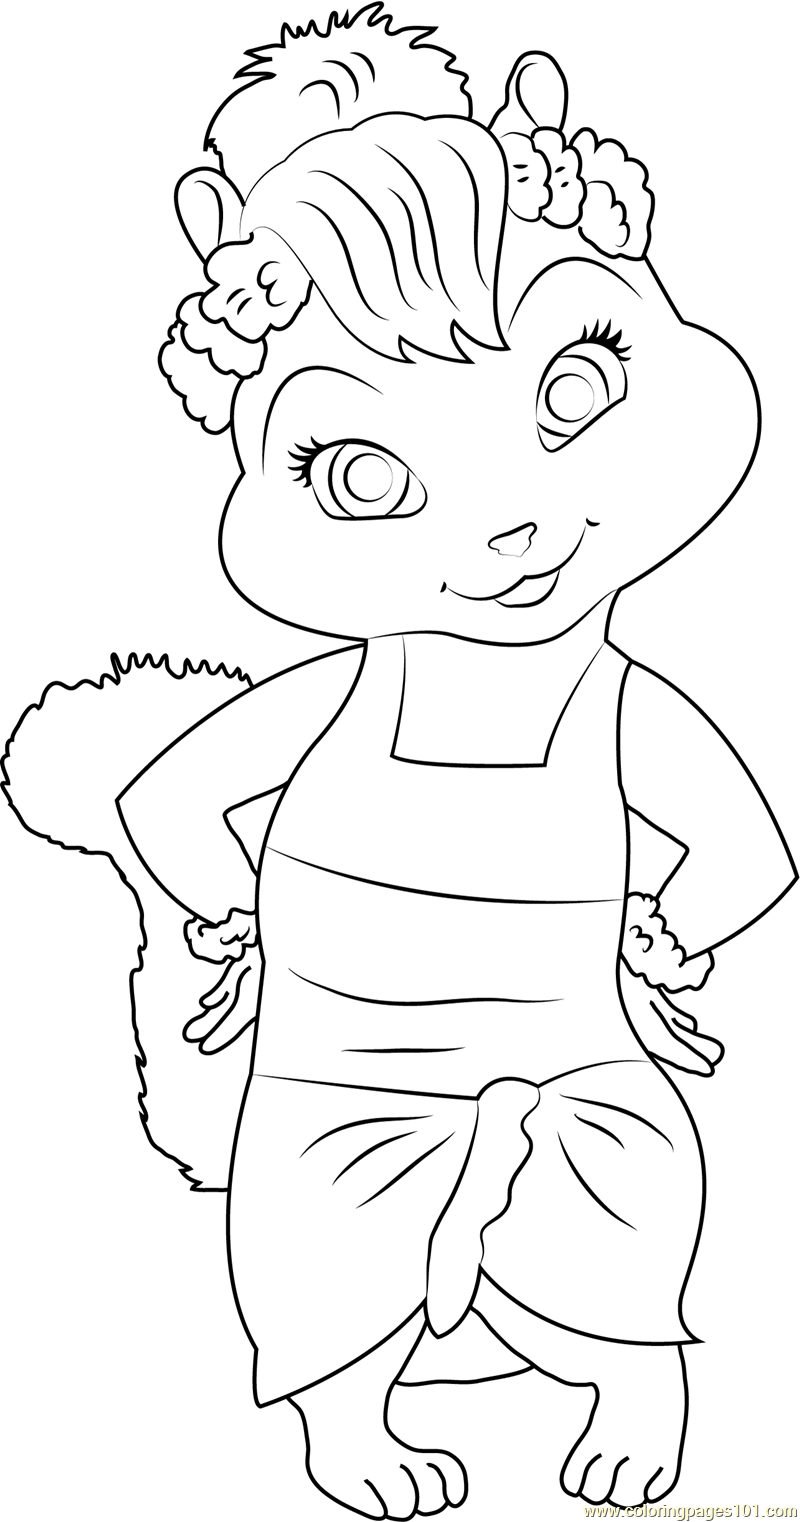 jeanette coloring page free alvin and the chipmunks